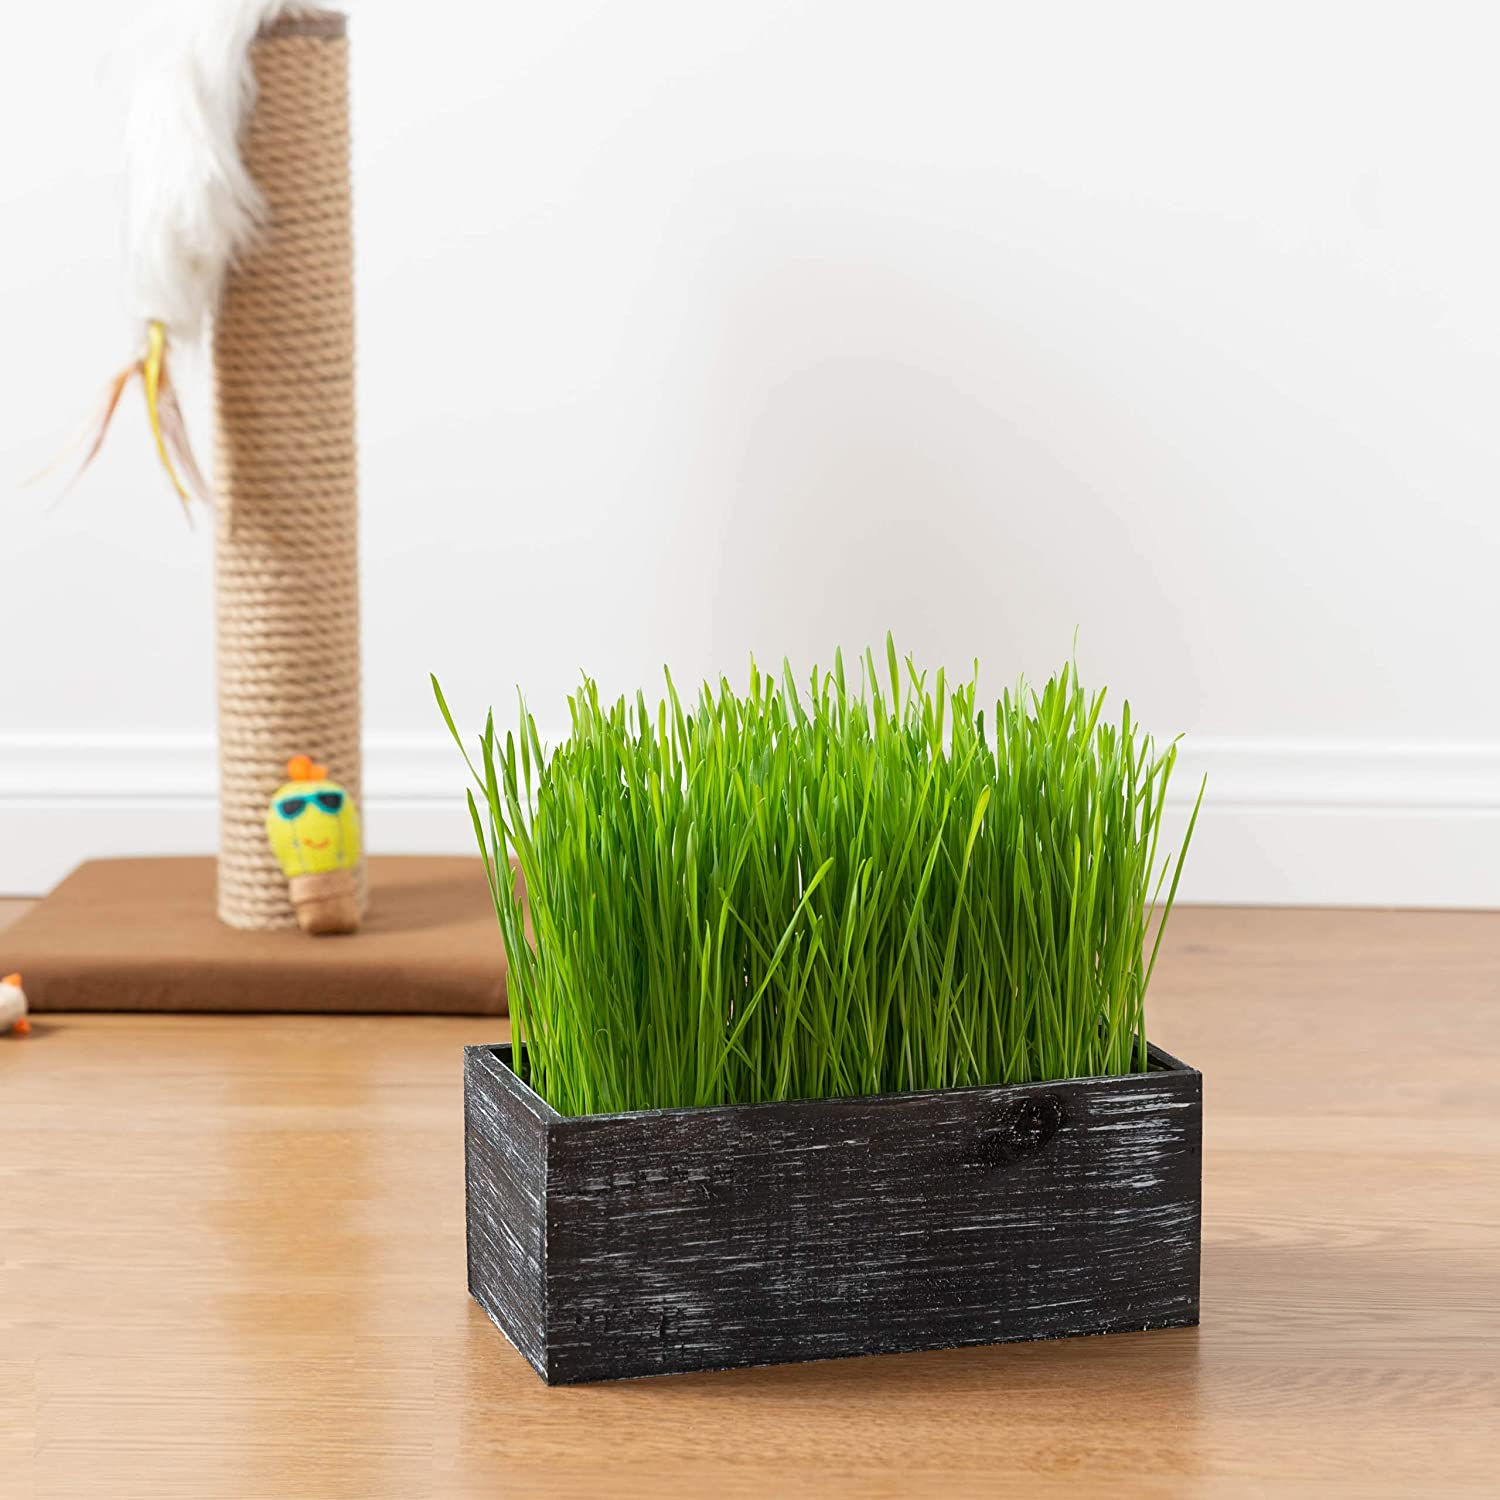 Organic Easy to Grow - Seed and Soil Dogs and Other Pets Prevent Hairballs and Aid Digestion Complete with Rustic Wood Planter Great for Indoor or Outdoor Cat Black Cat Grass Kit